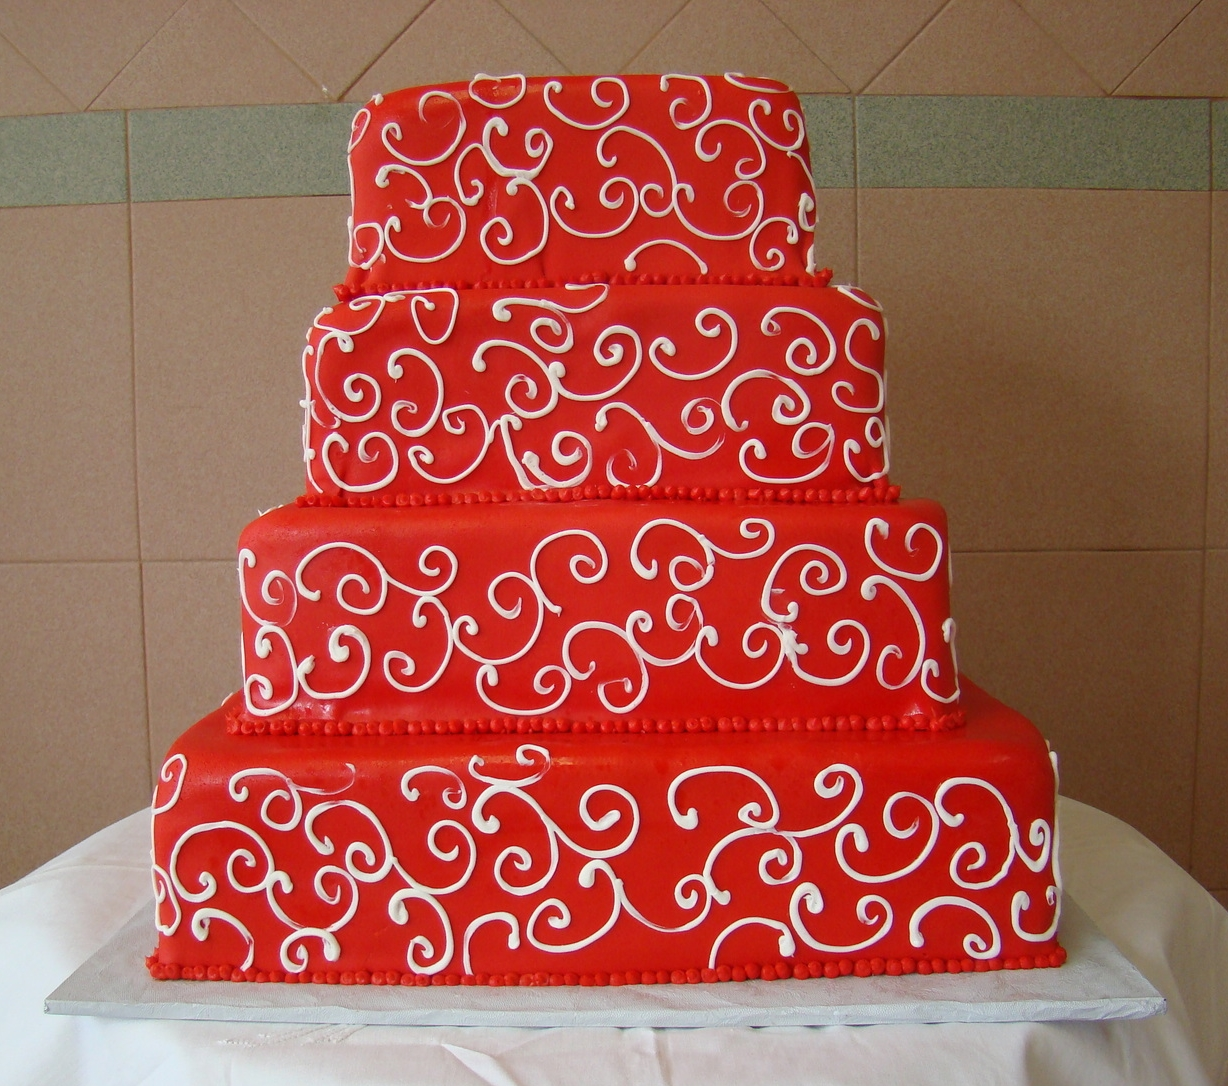 35 Square in Red Rolled Fondant